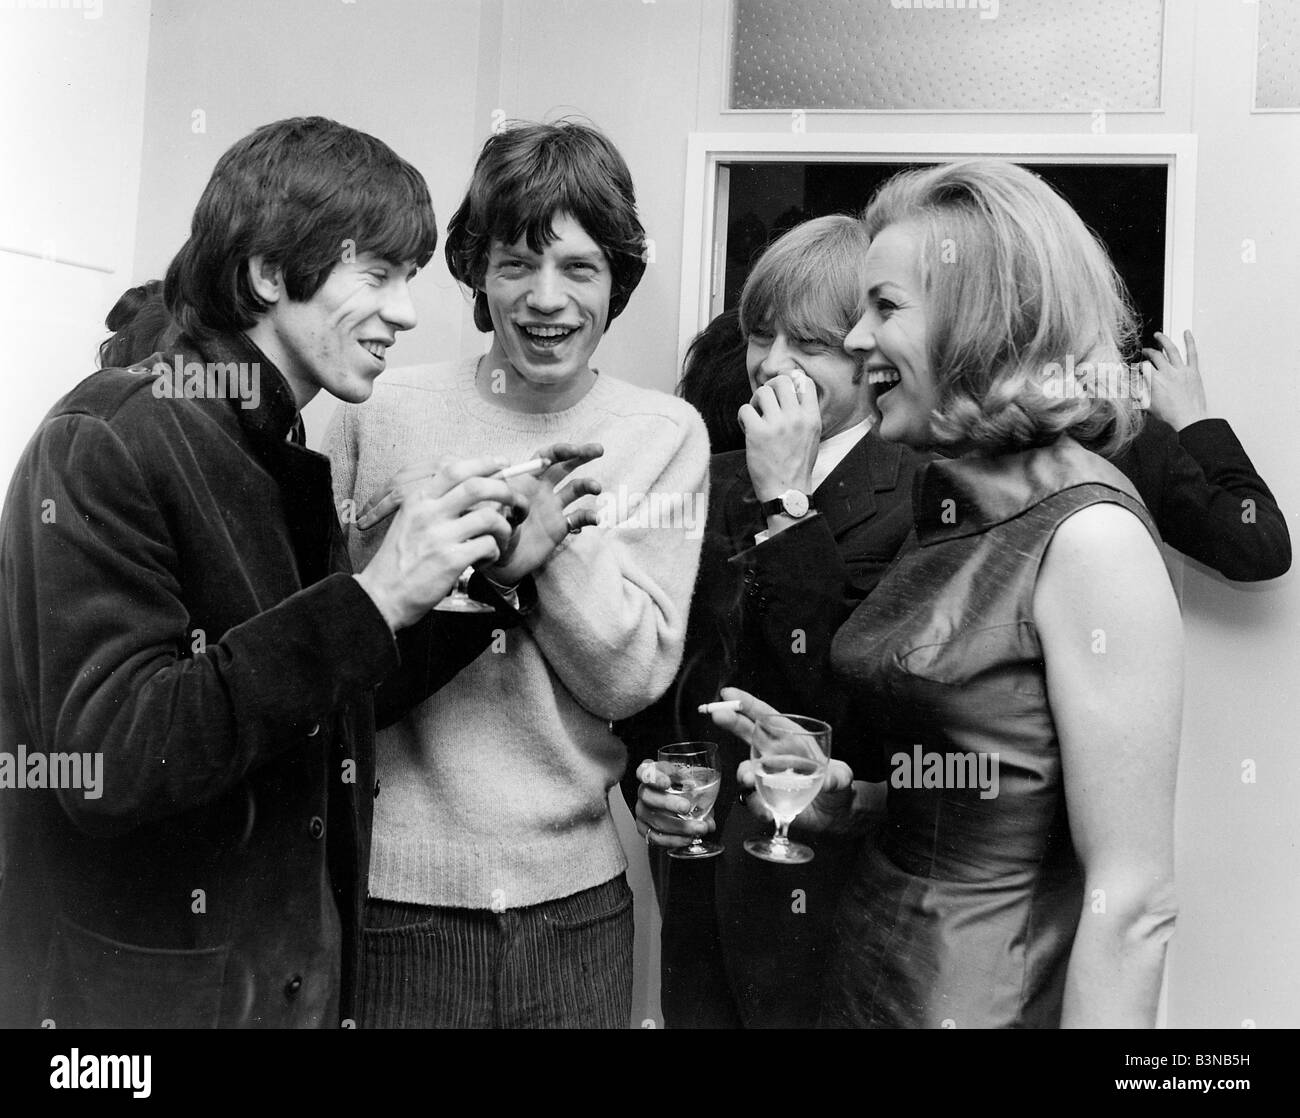 https://c8.alamy.com/comp/B3NB5H/rolling-stones-richard-jagger-and-jones-with-actress-honor-blackman-B3NB5H.jpg